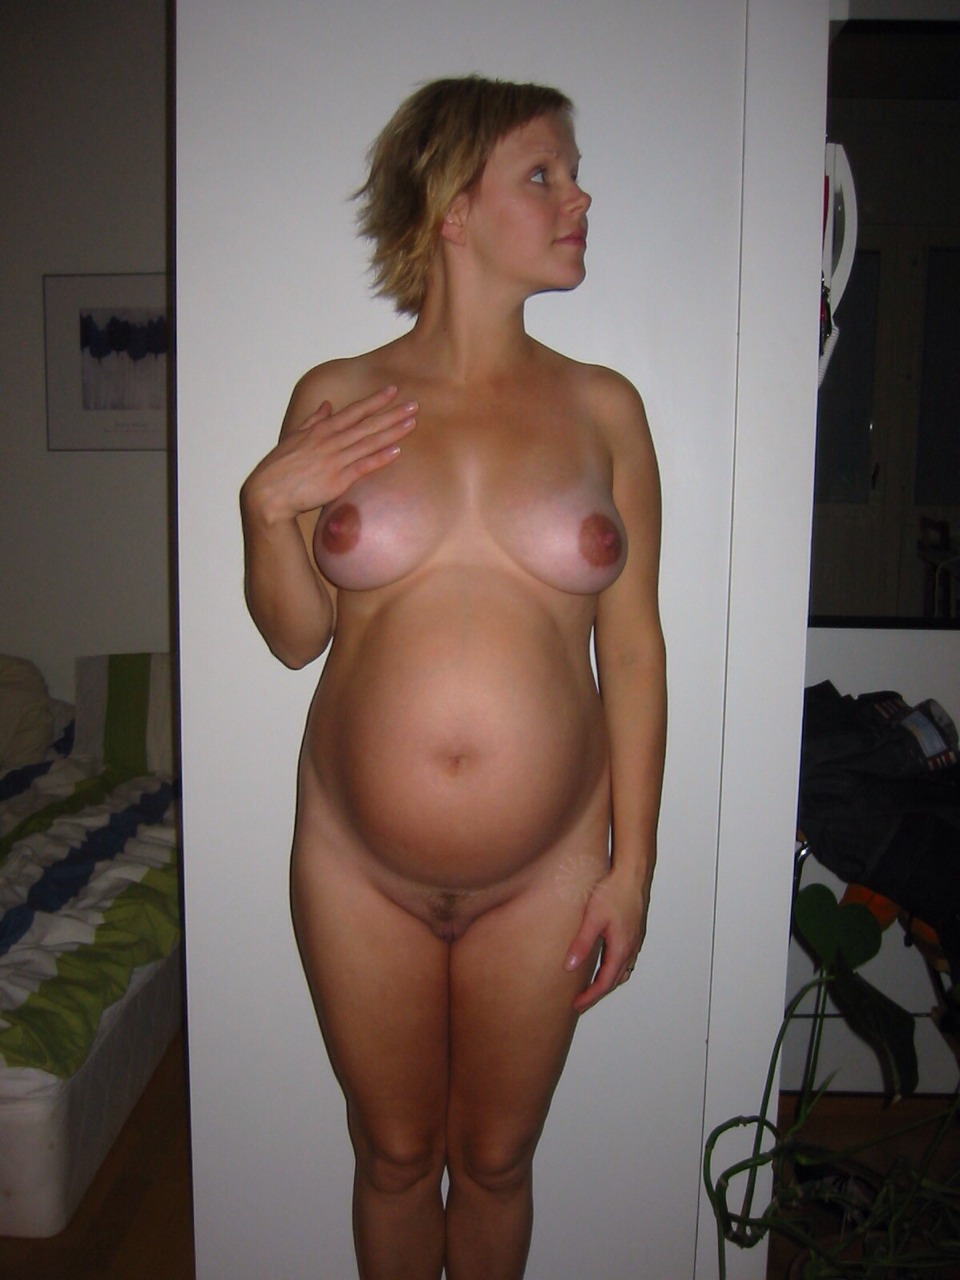 Are not Swollen tits pics something